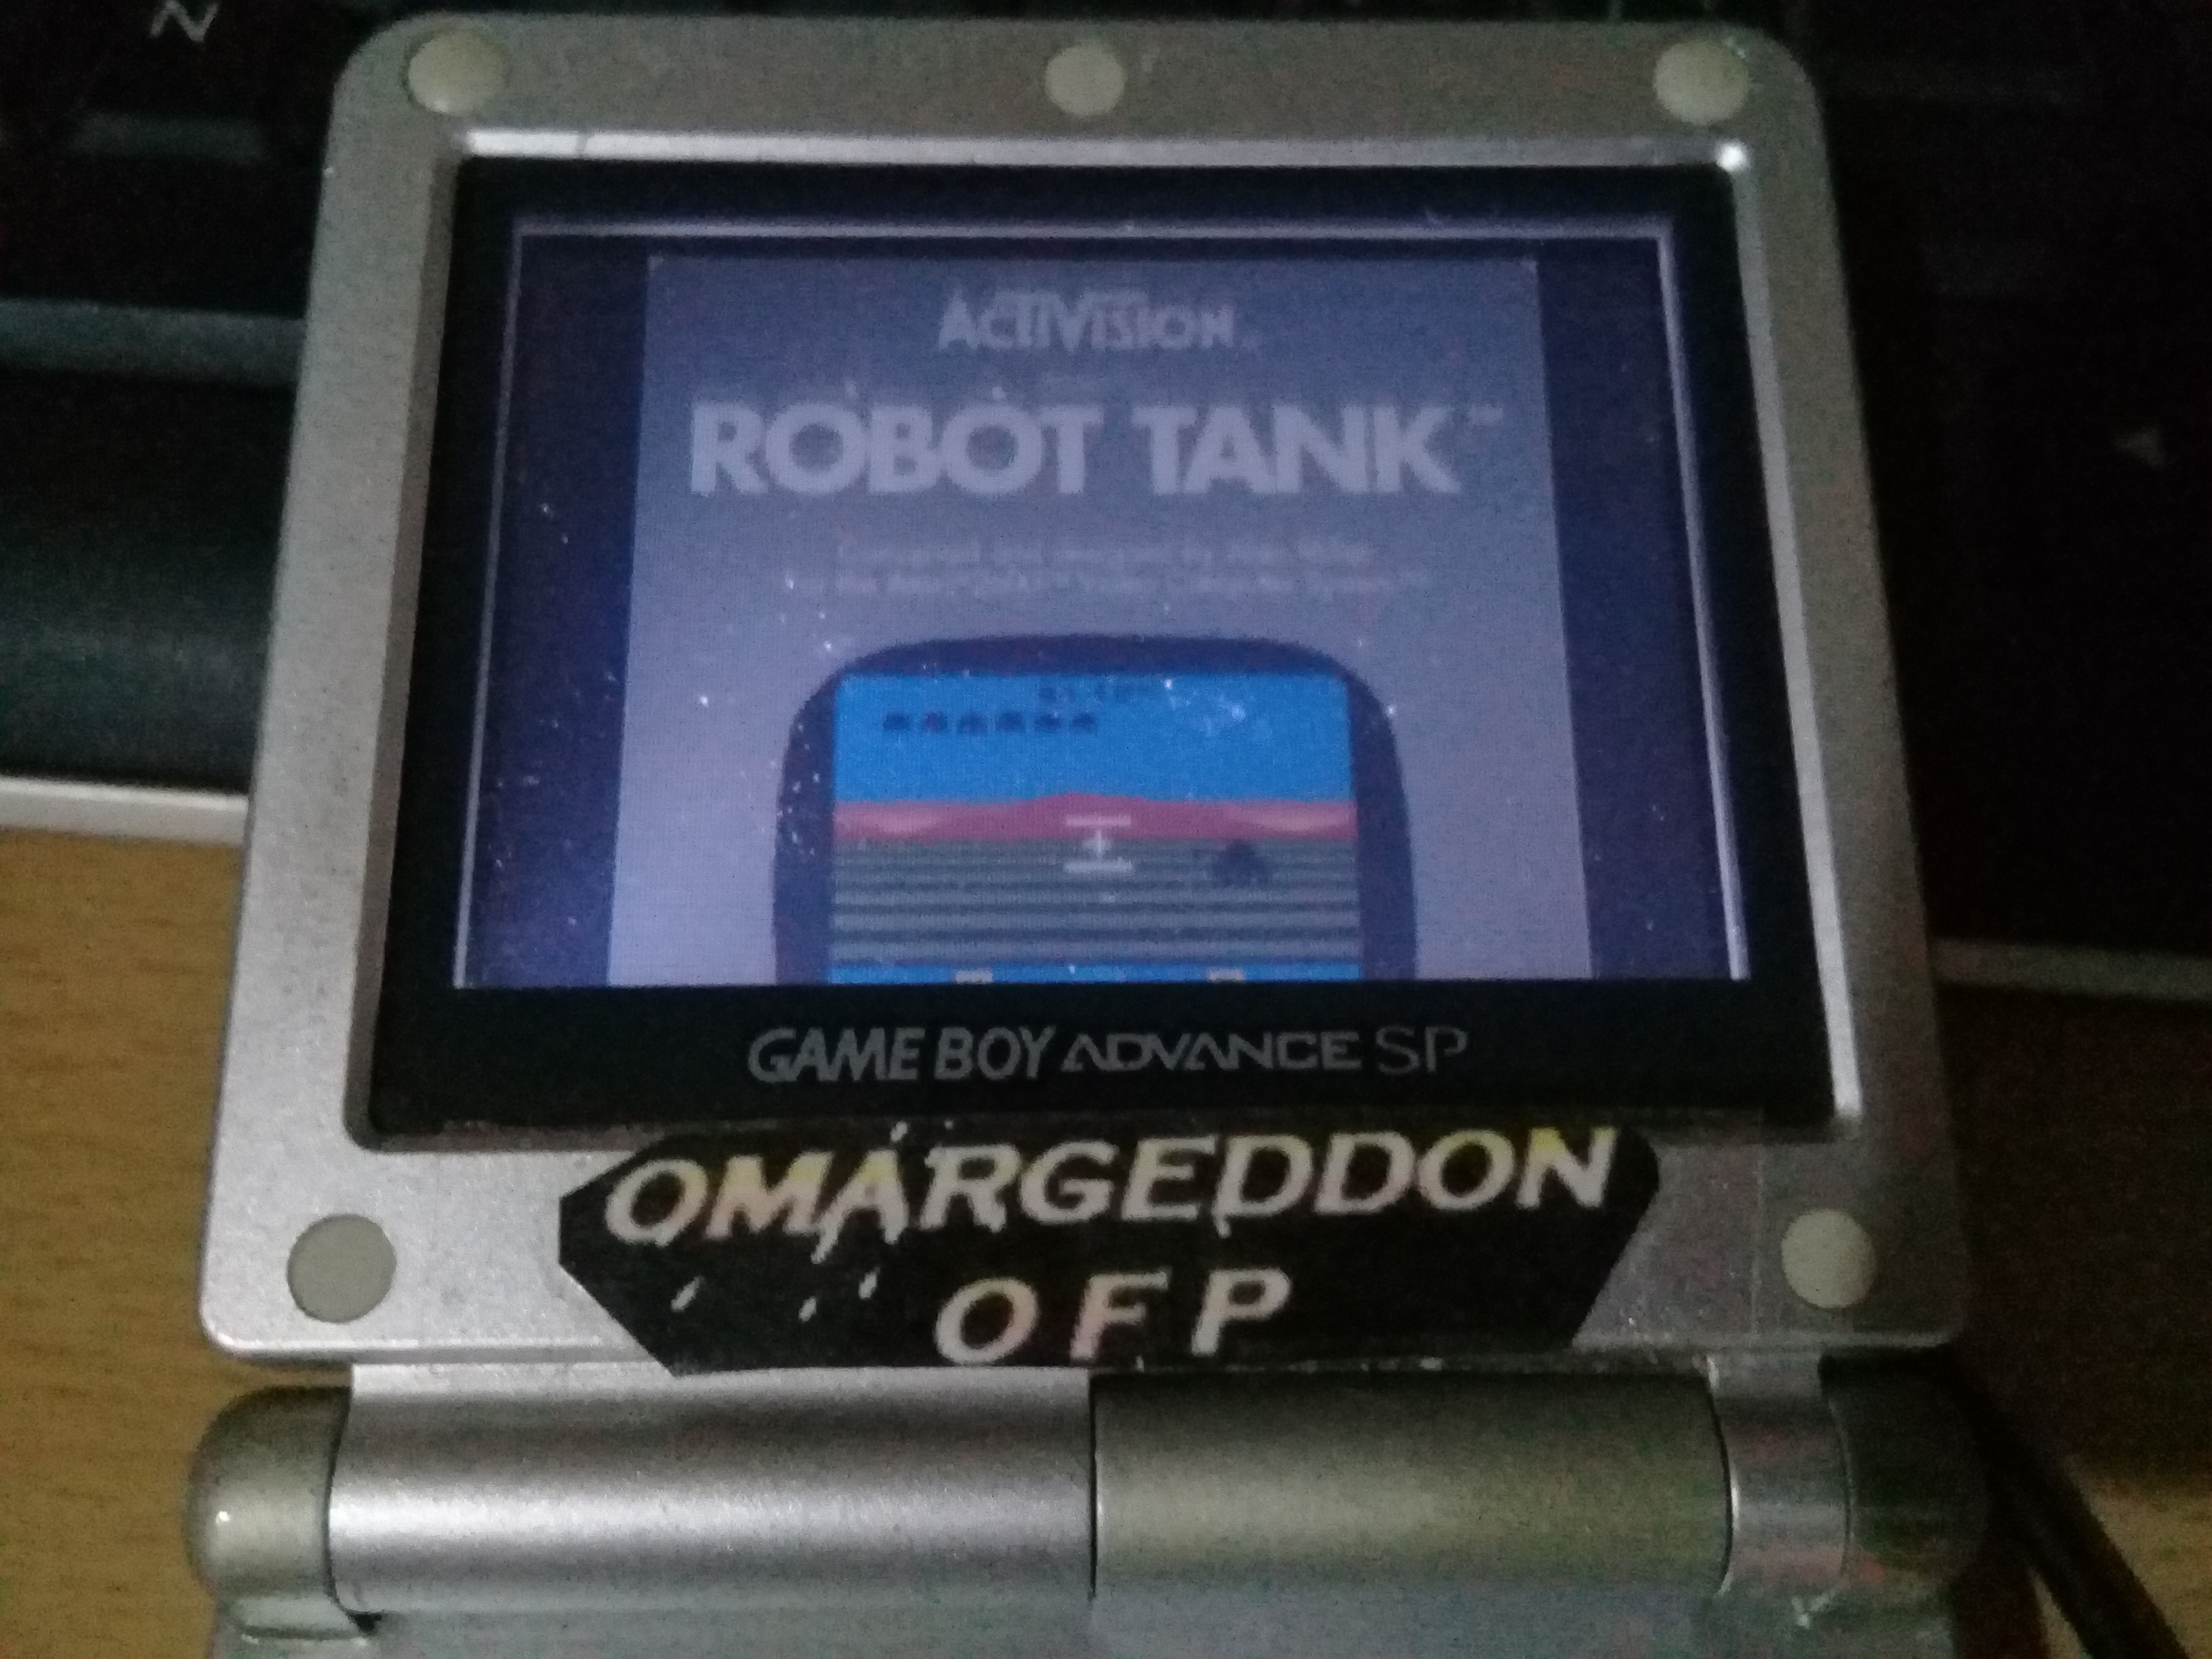 omargeddon: Activision Anthology: Robot Tank [Game 1B] (GBA) 26 points on 2019-09-21 00:44:01